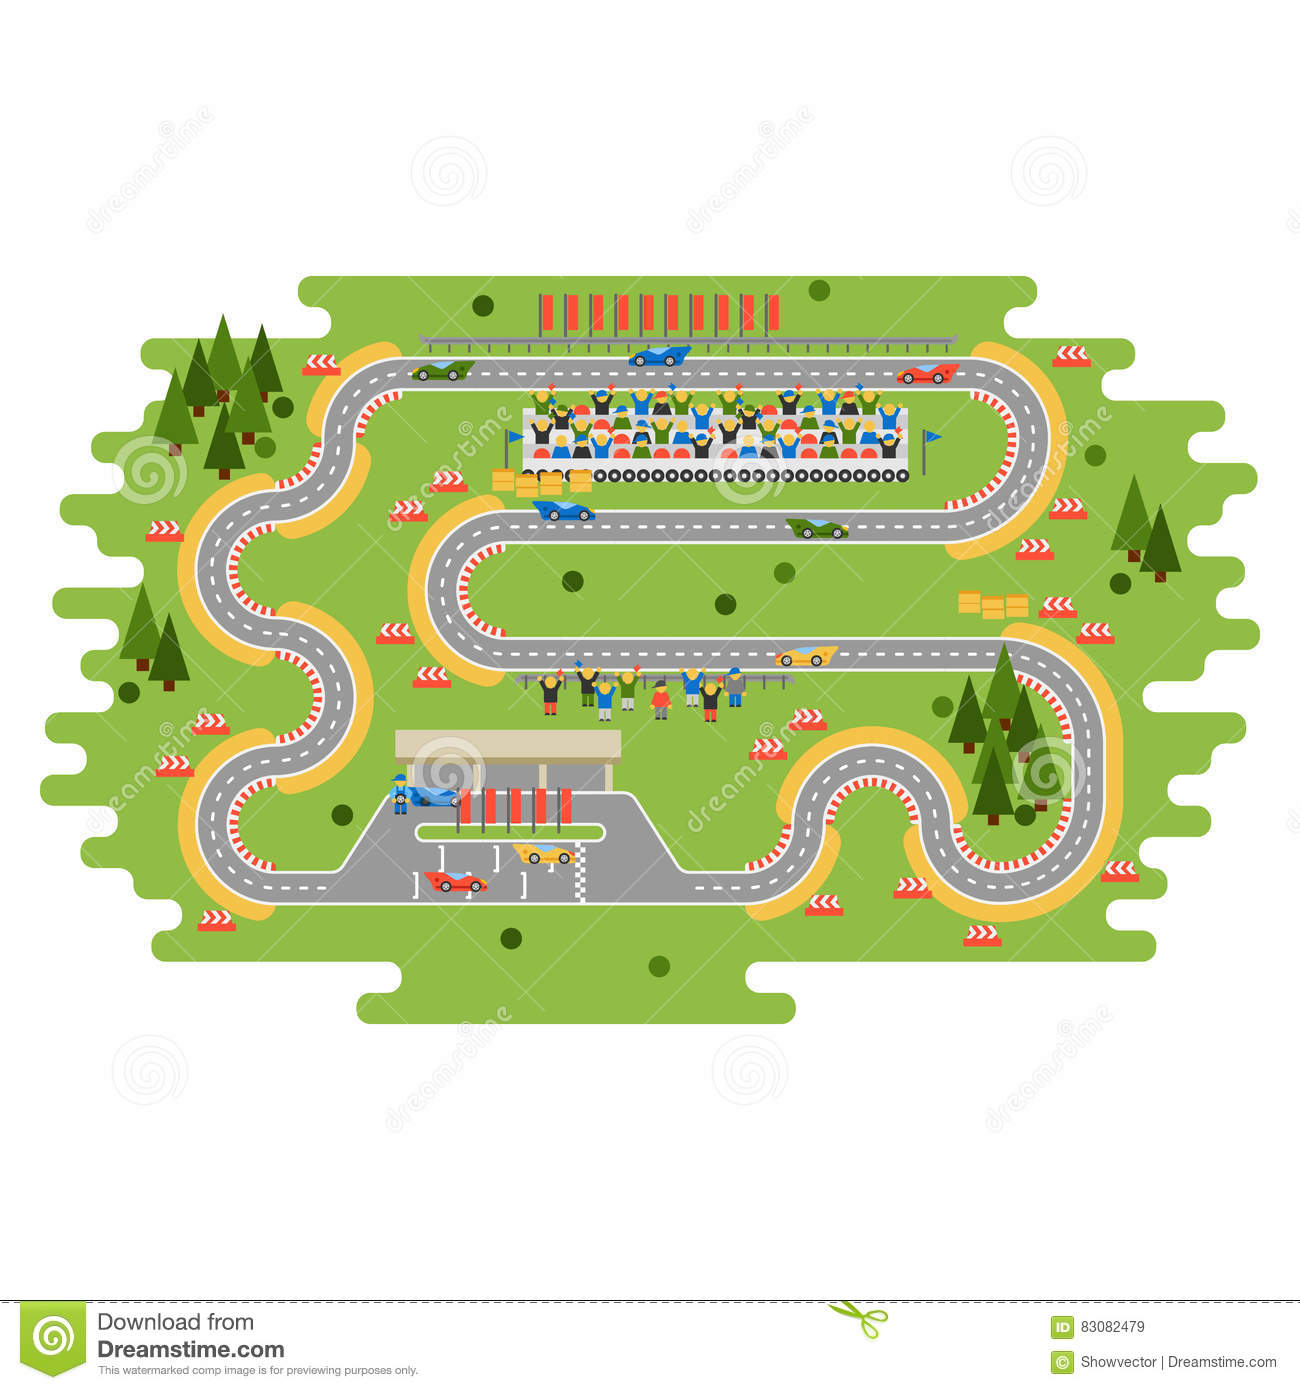 Race Track Curve Road Stock Vector Illustration Of Circuit 83082479 Symbols In Top View Car Sport Competition Constructor Transportation Tire Speedway Line Automobile Highway Flare Formula Finish